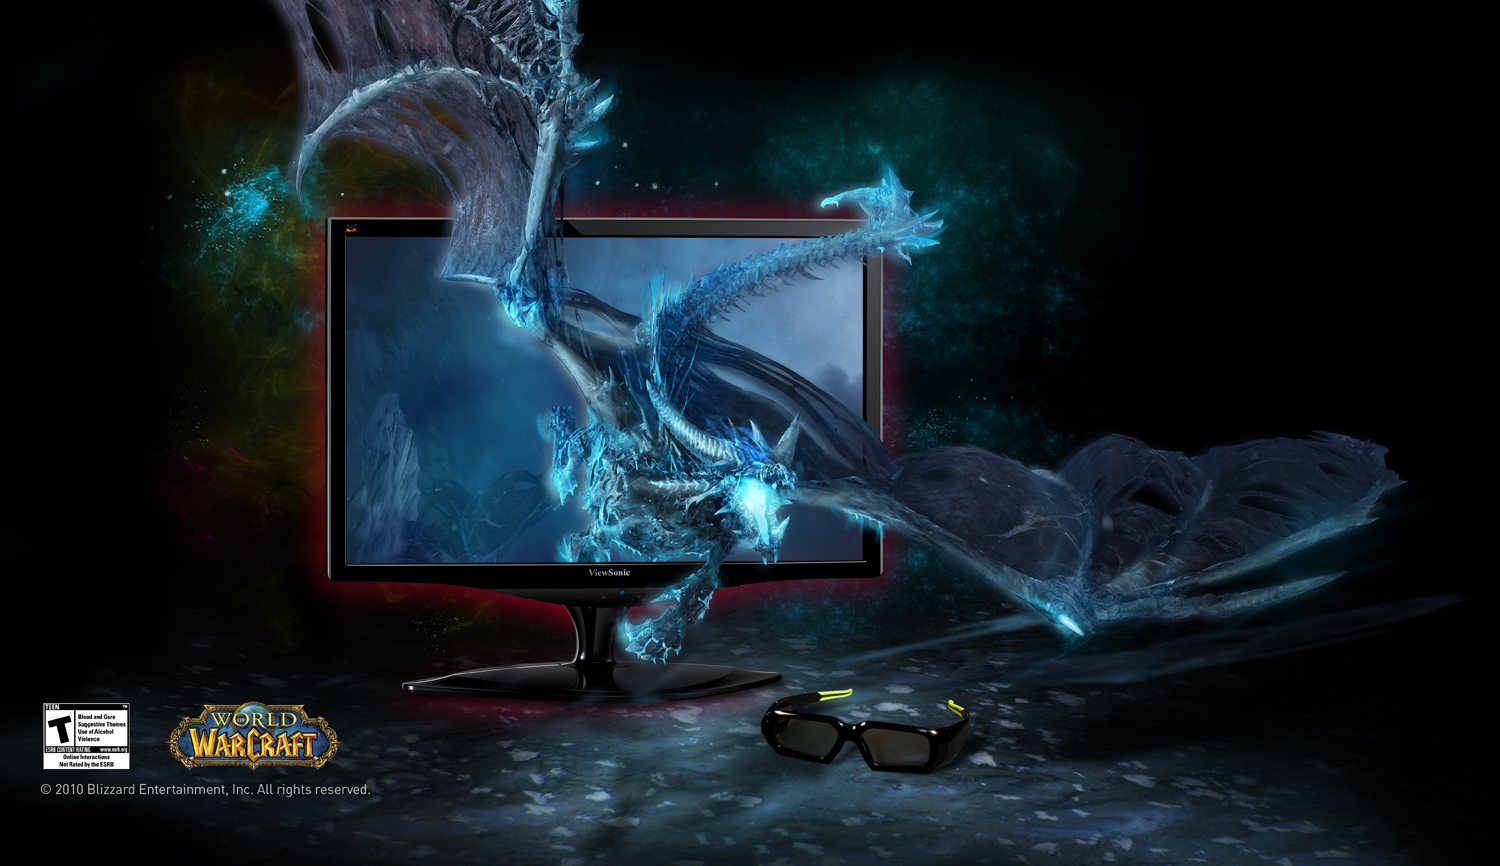 3d Nvidia Vision Myopiageneral Glasses: ViewSonic And Nvidia Unveil New 3D Monitor